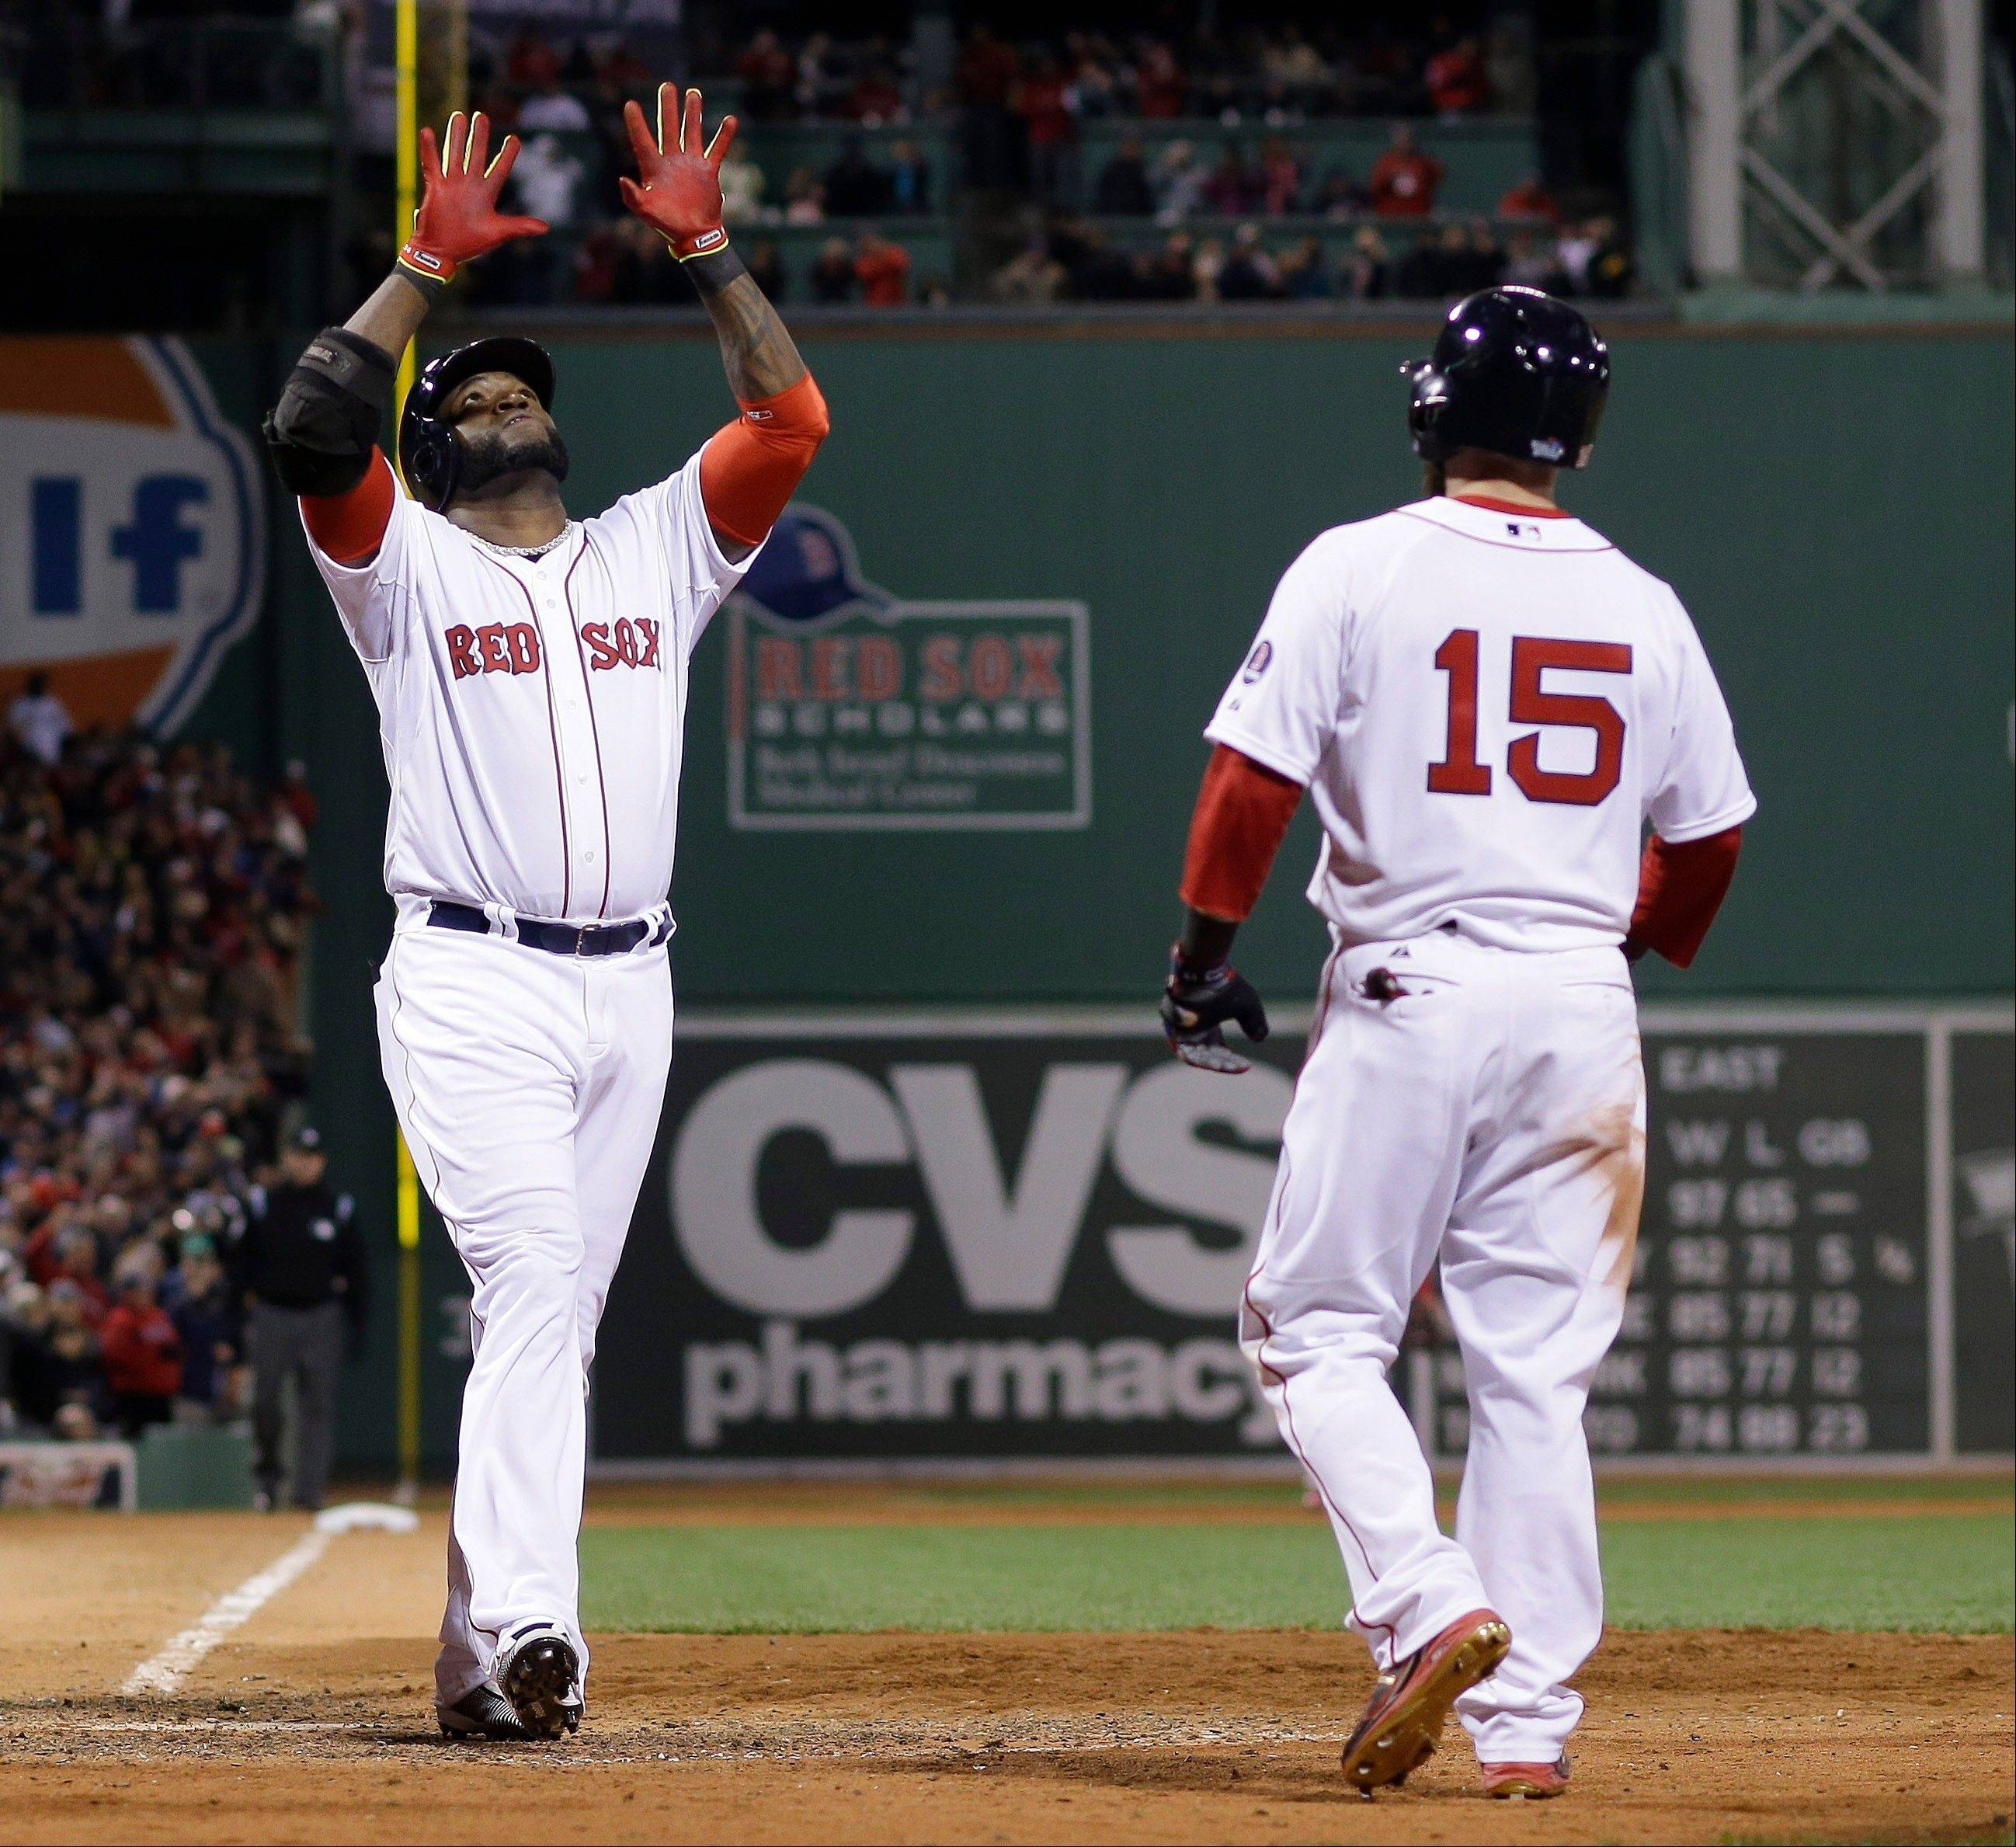 Boston Red Sox's David Ortiz celebrates as he crosses home after hitting a two-run home run Wednesday during the seventh inning of Game 1 of baseball's World Series against the St. Louis Cardinals in Boston. Dustin Pedroia (15) scored on the homer.